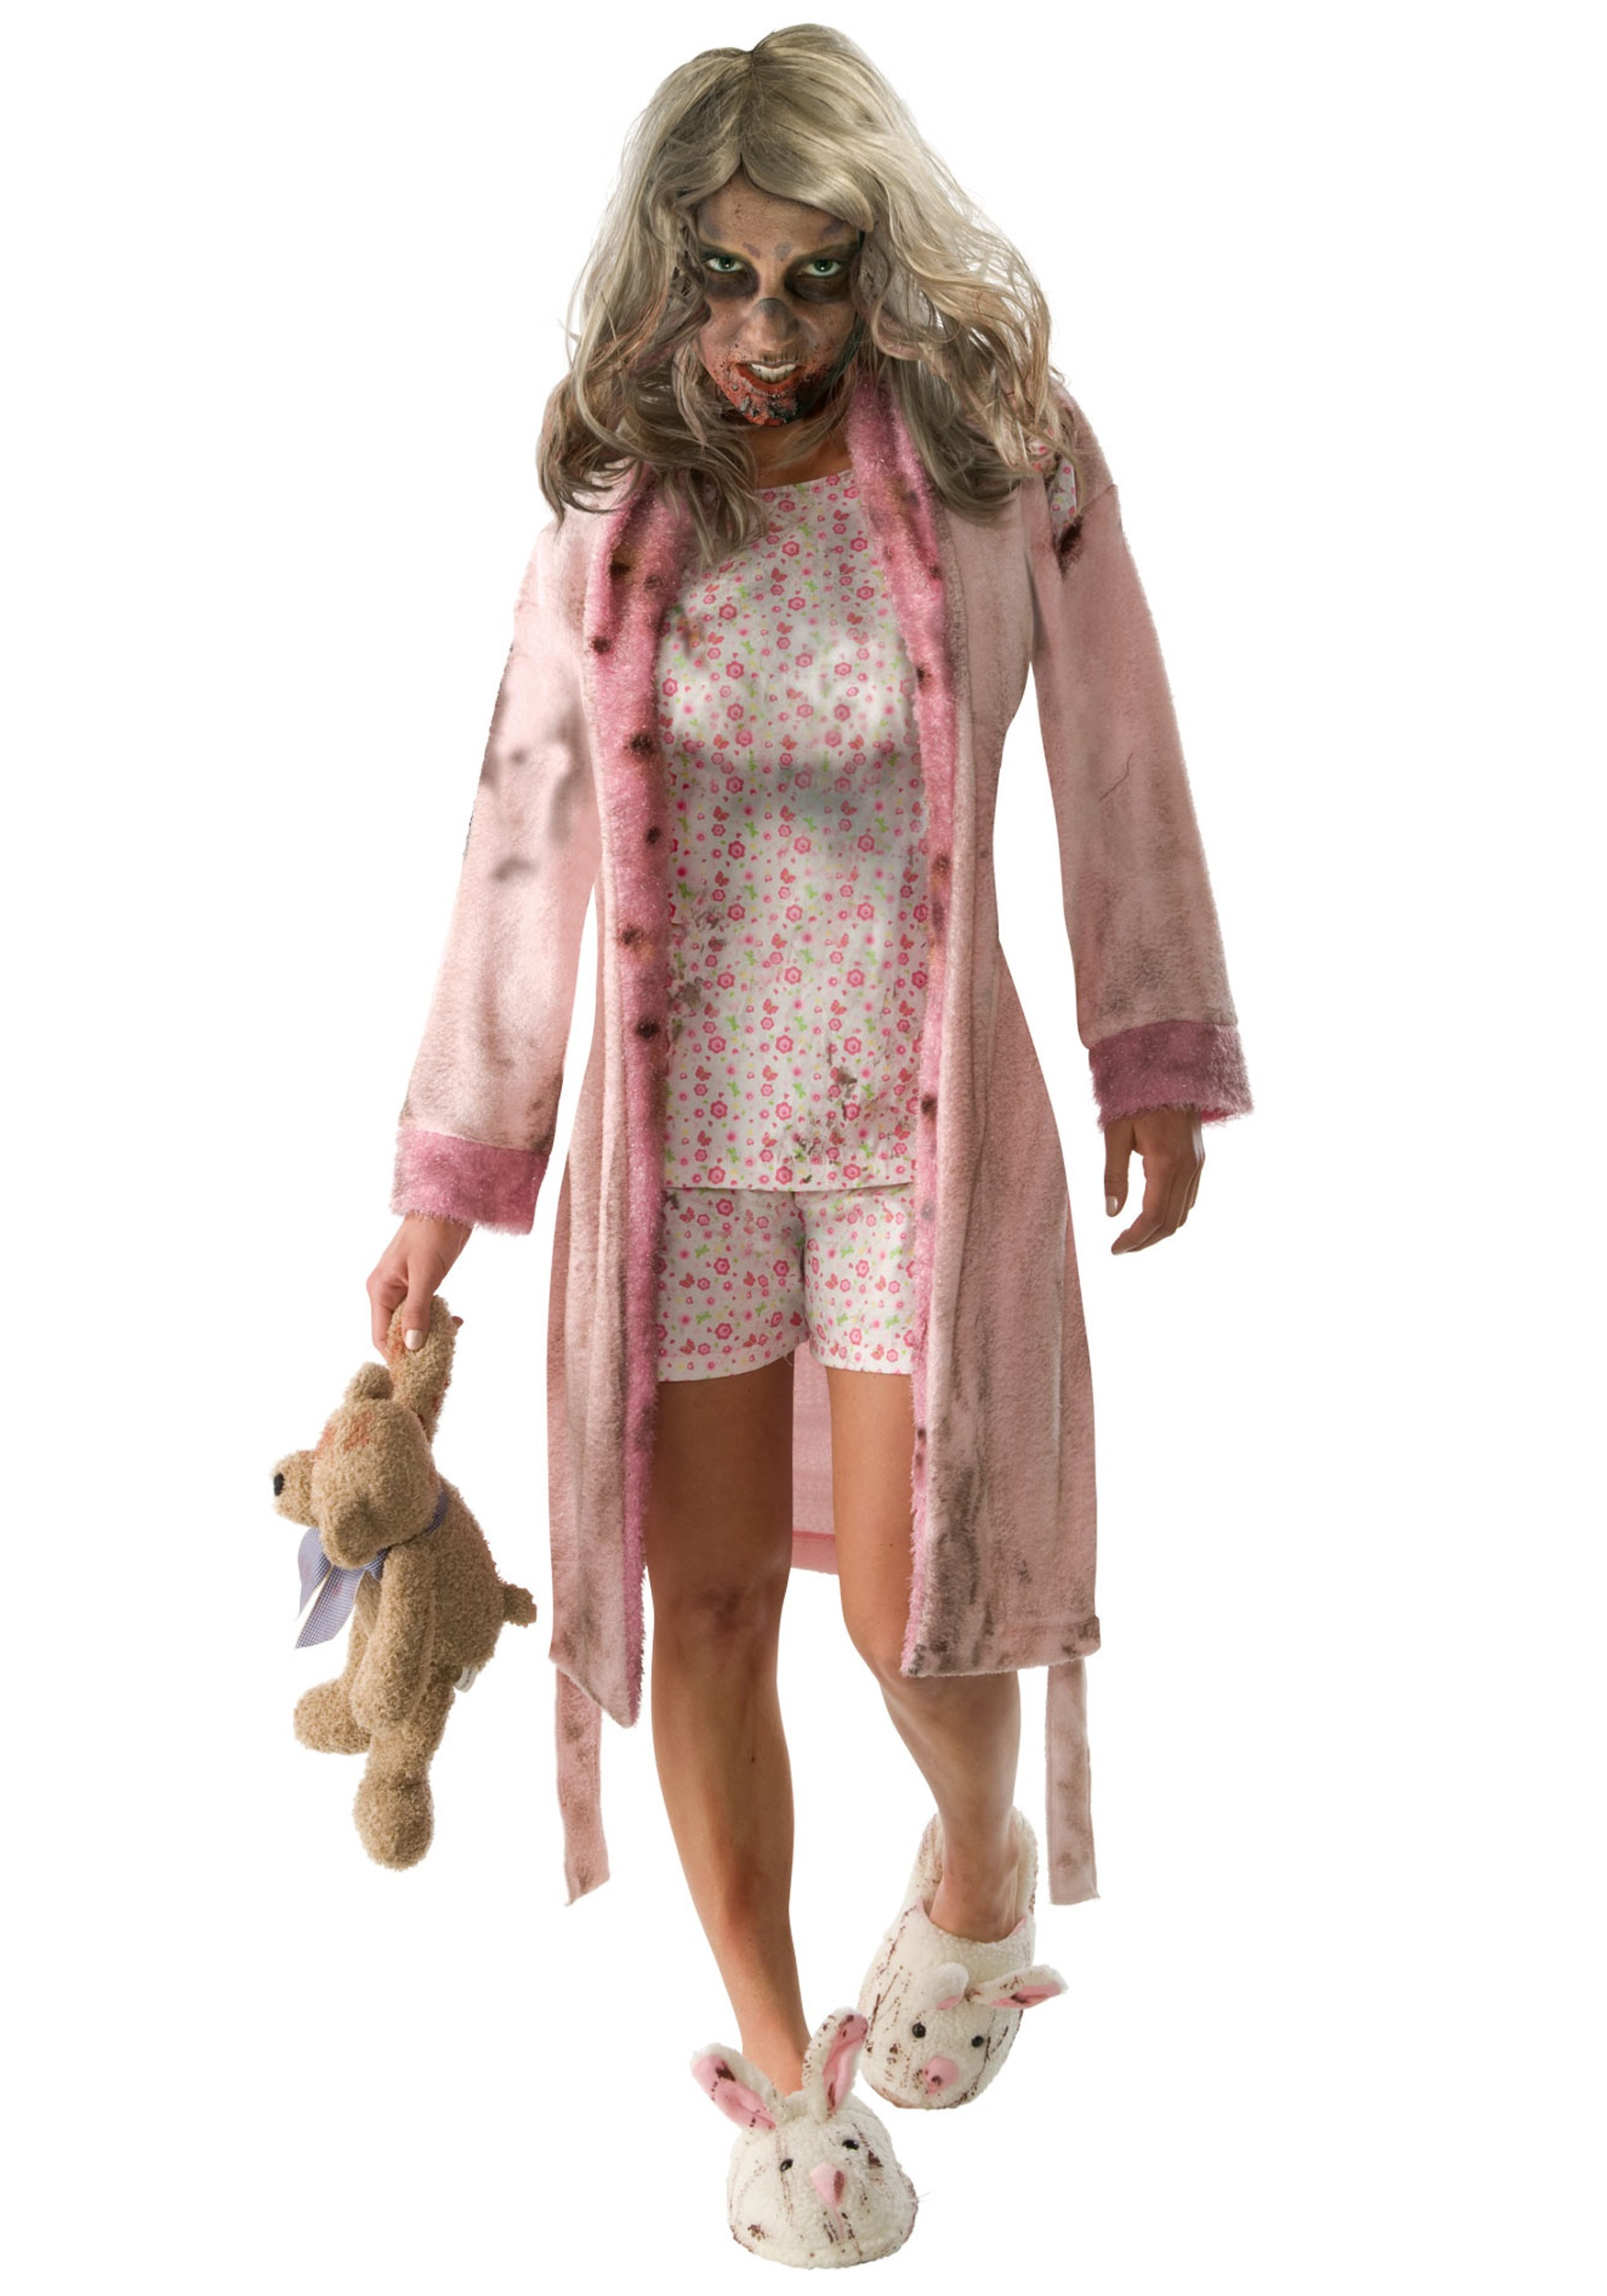 teen little girl zombie costume - halloween costume ideas 2018